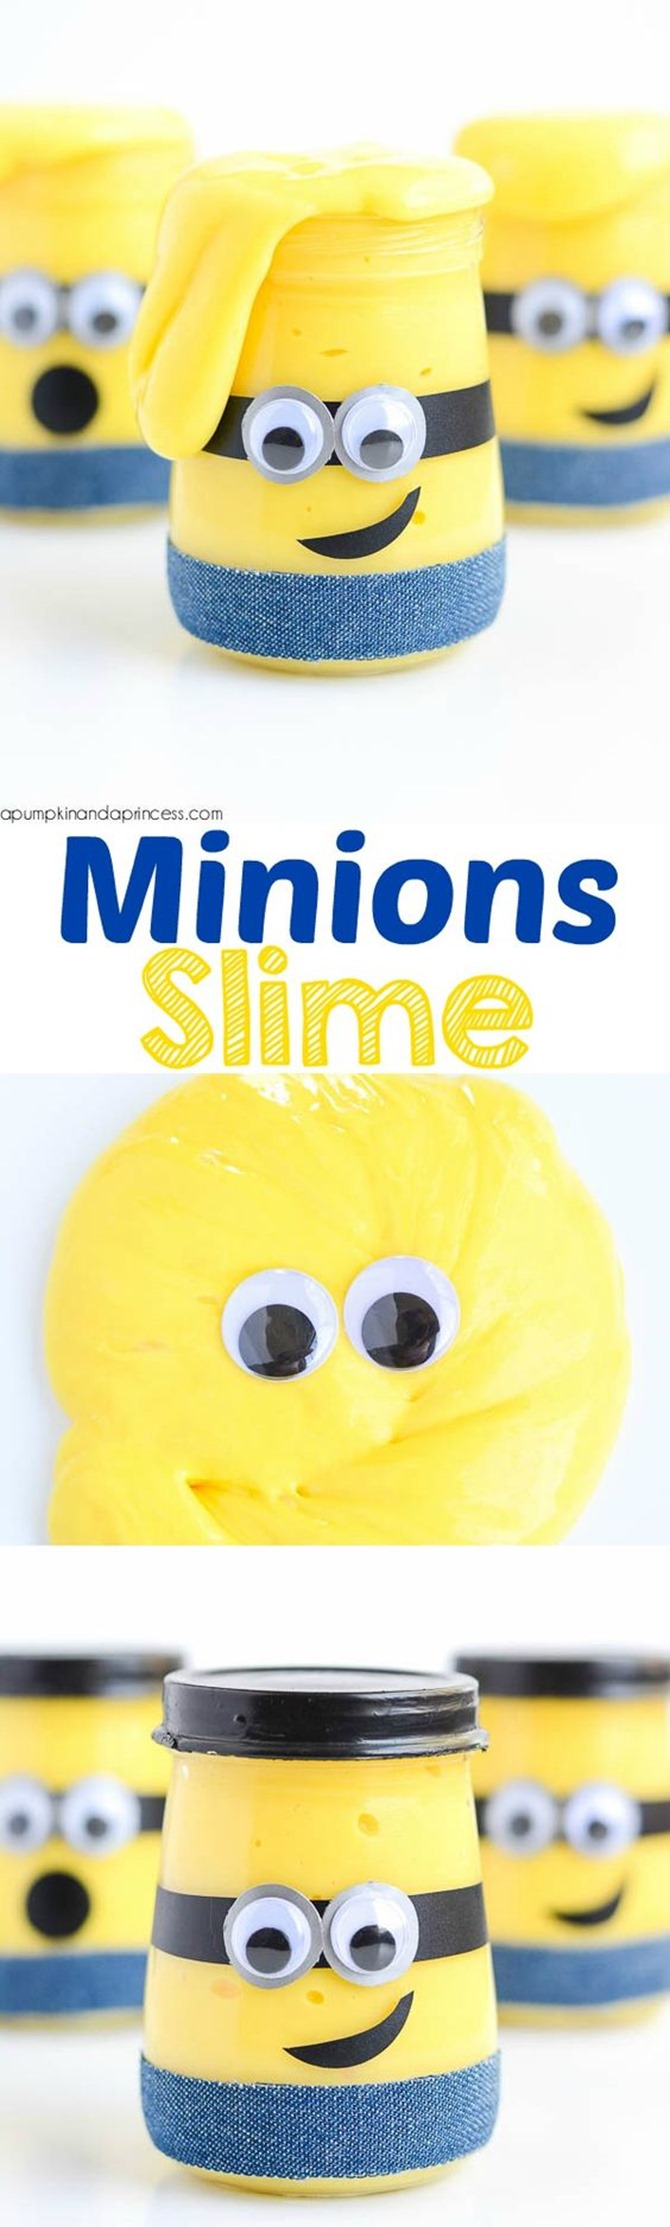 12 DIY Slime Recipes - Minions